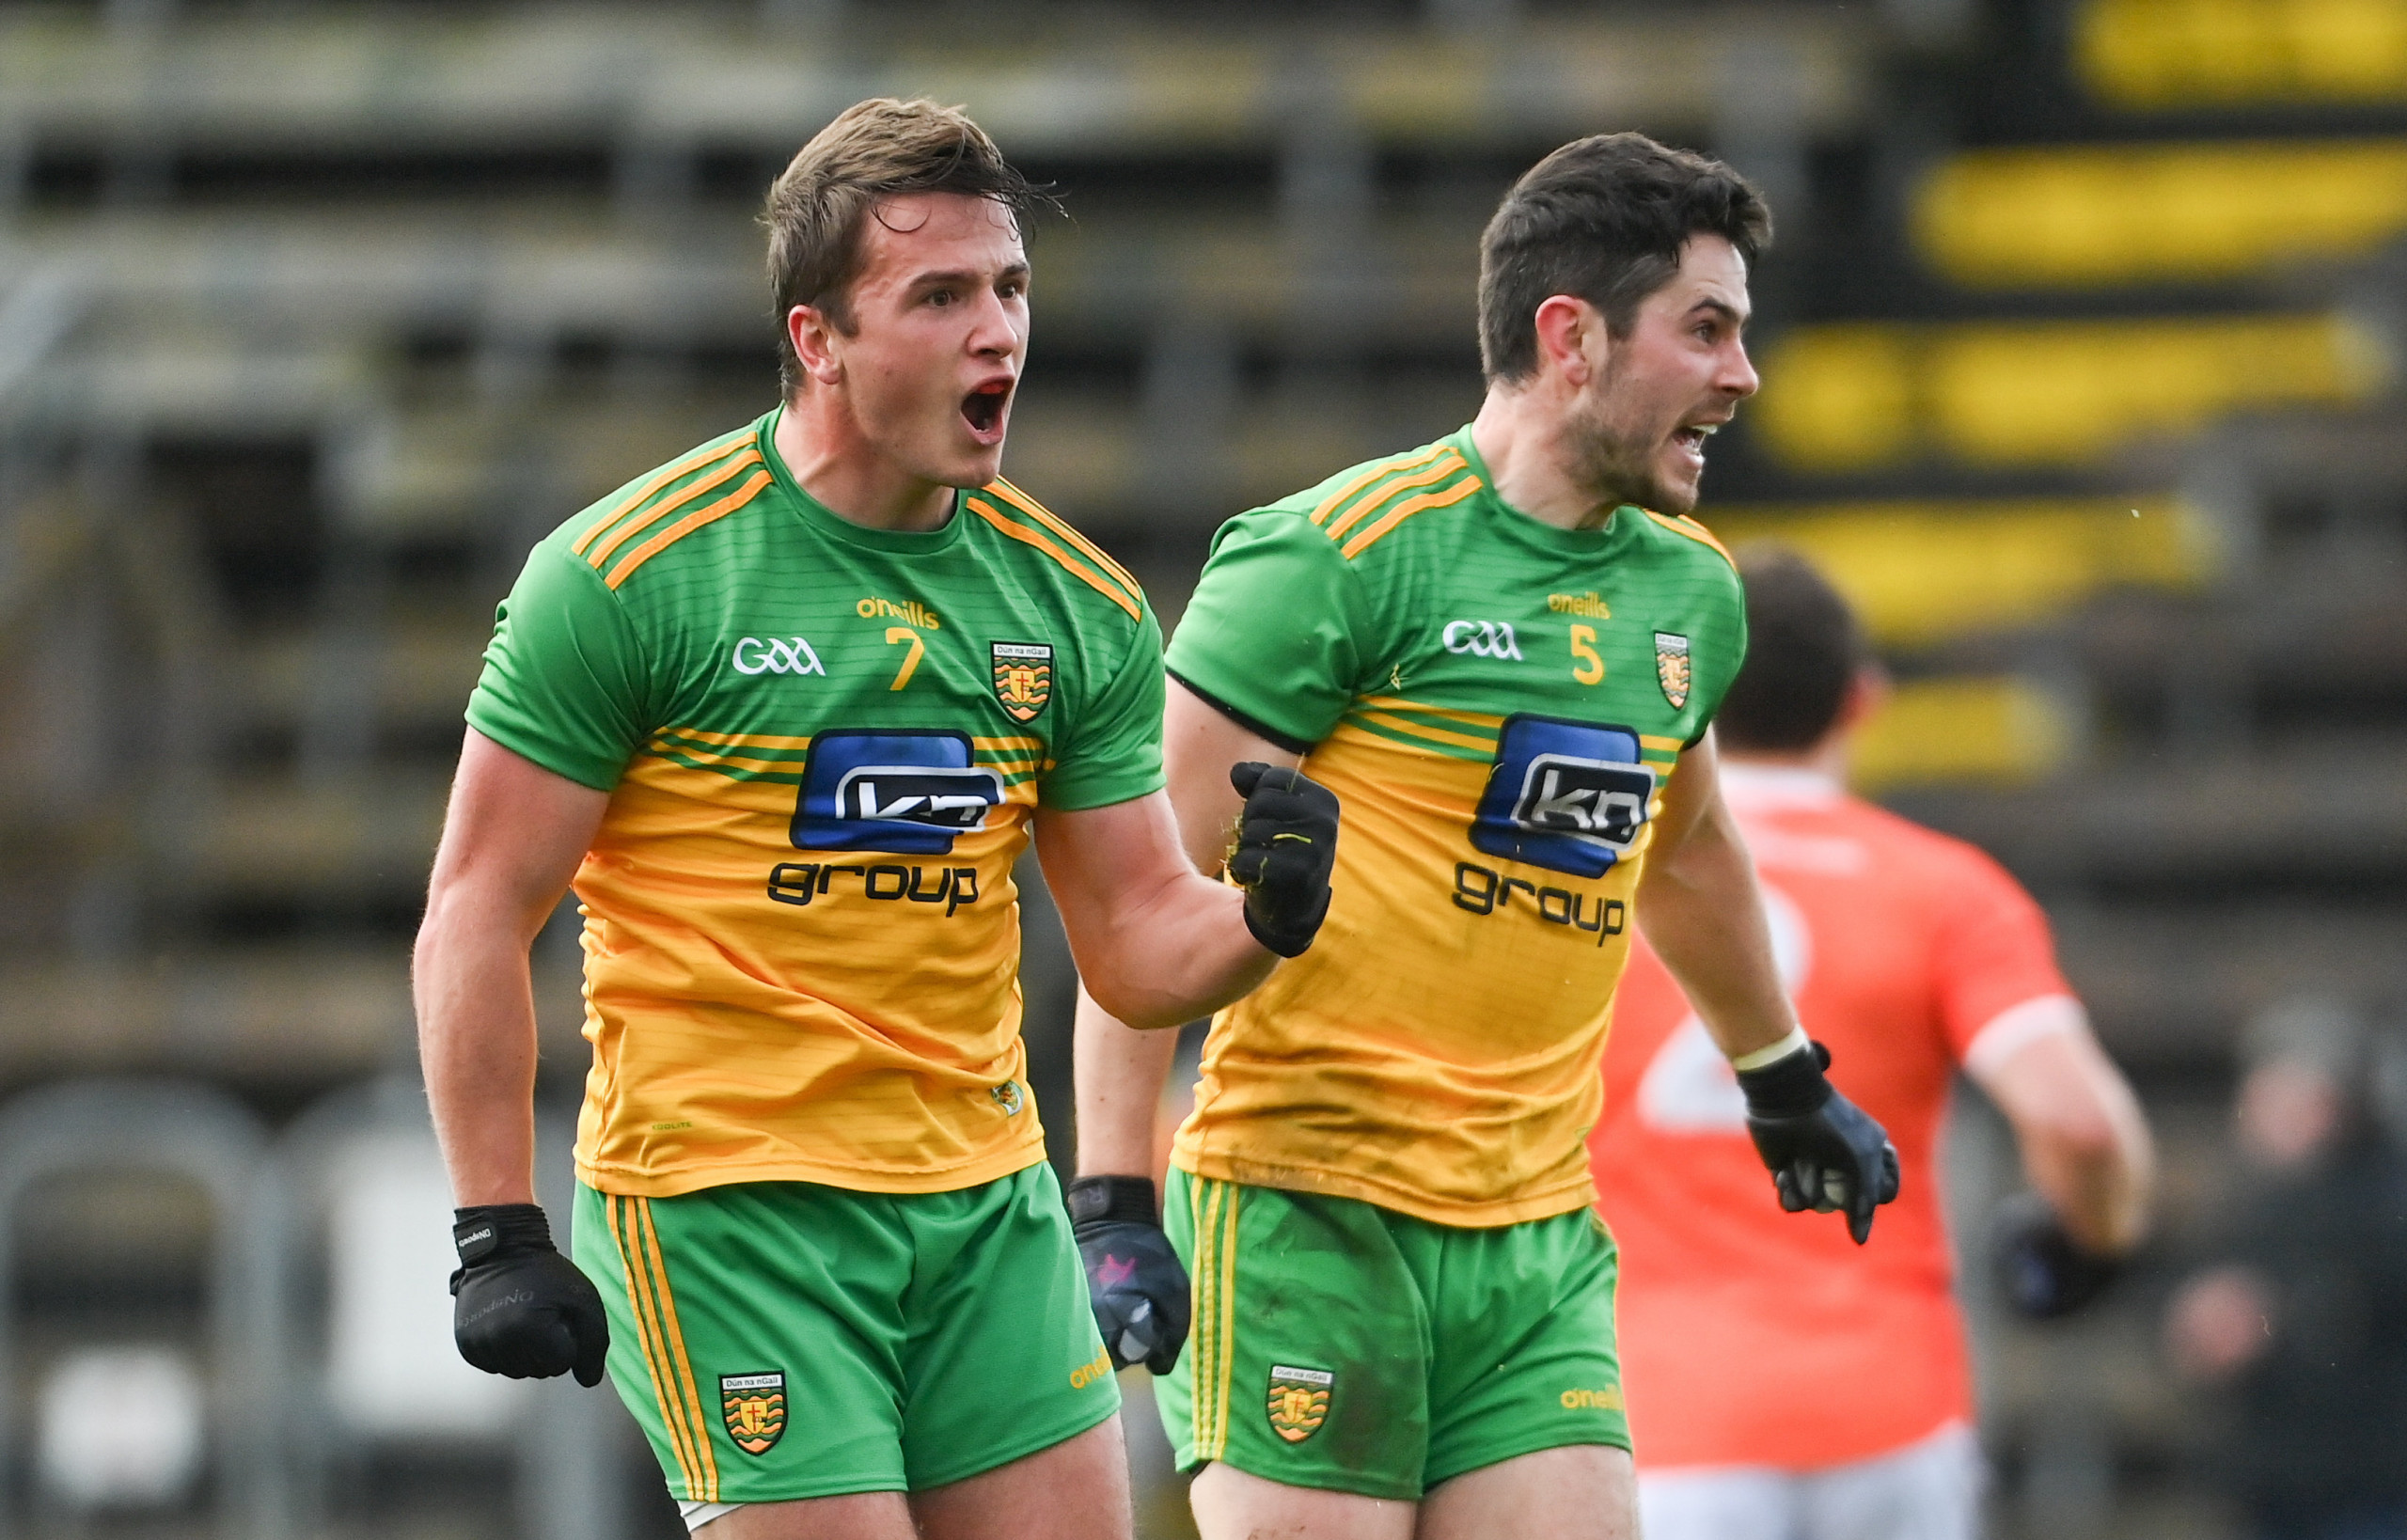 REPORT: Dominant Donegal progress to Ulster final